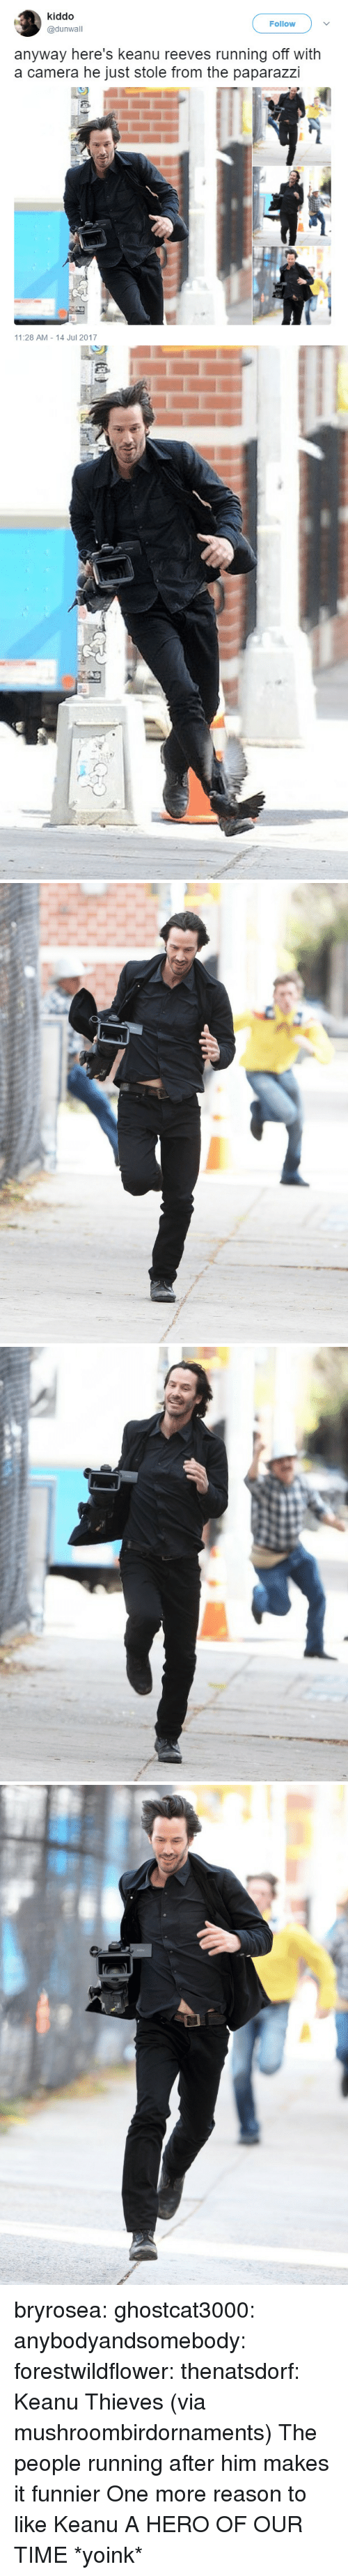 Yoink: kiddo  @dunwall  Follow  anyway here's keanu reeves running off with  a camera he just stole from the paparazzi  11:28 AM 14 Jul 2017 bryrosea: ghostcat3000:  anybodyandsomebody:  forestwildflower:   thenatsdorf: Keanu Thieves (via mushroombirdornaments)  The people running after him makes it funnier   One more reason to like Keanu  A HERO OF OUR TIME  *yoink*